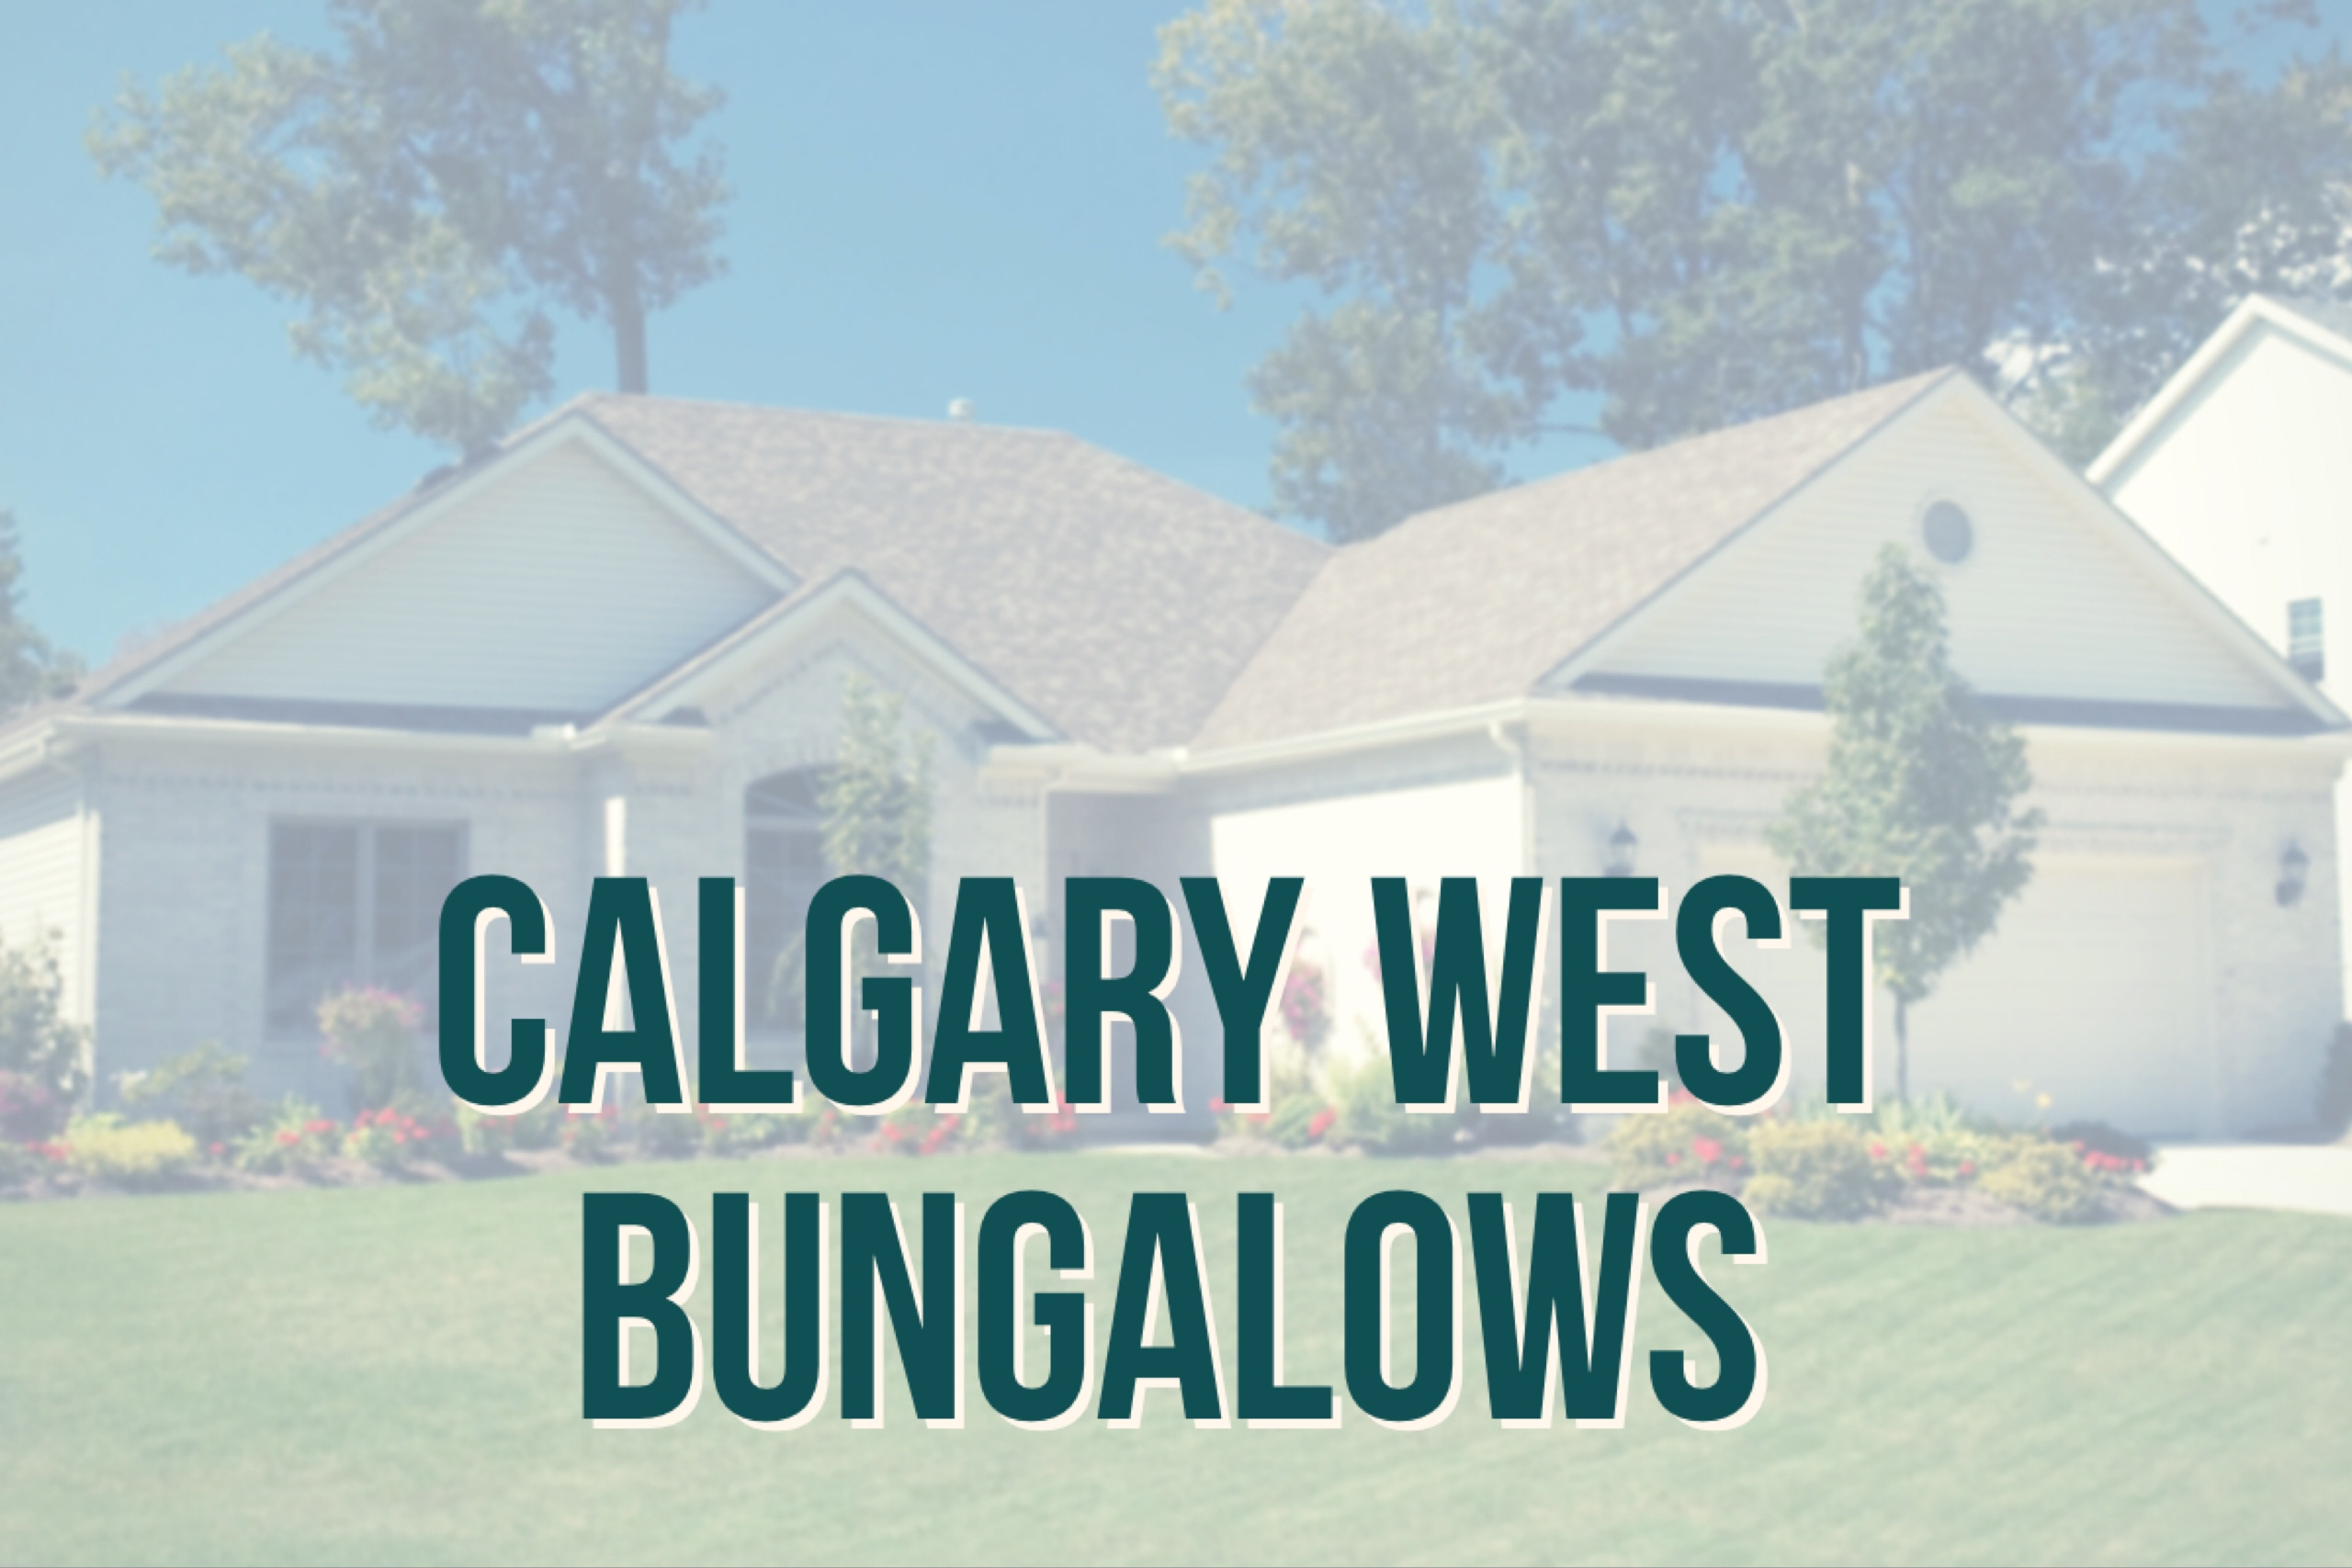 Calgary West Bungalows